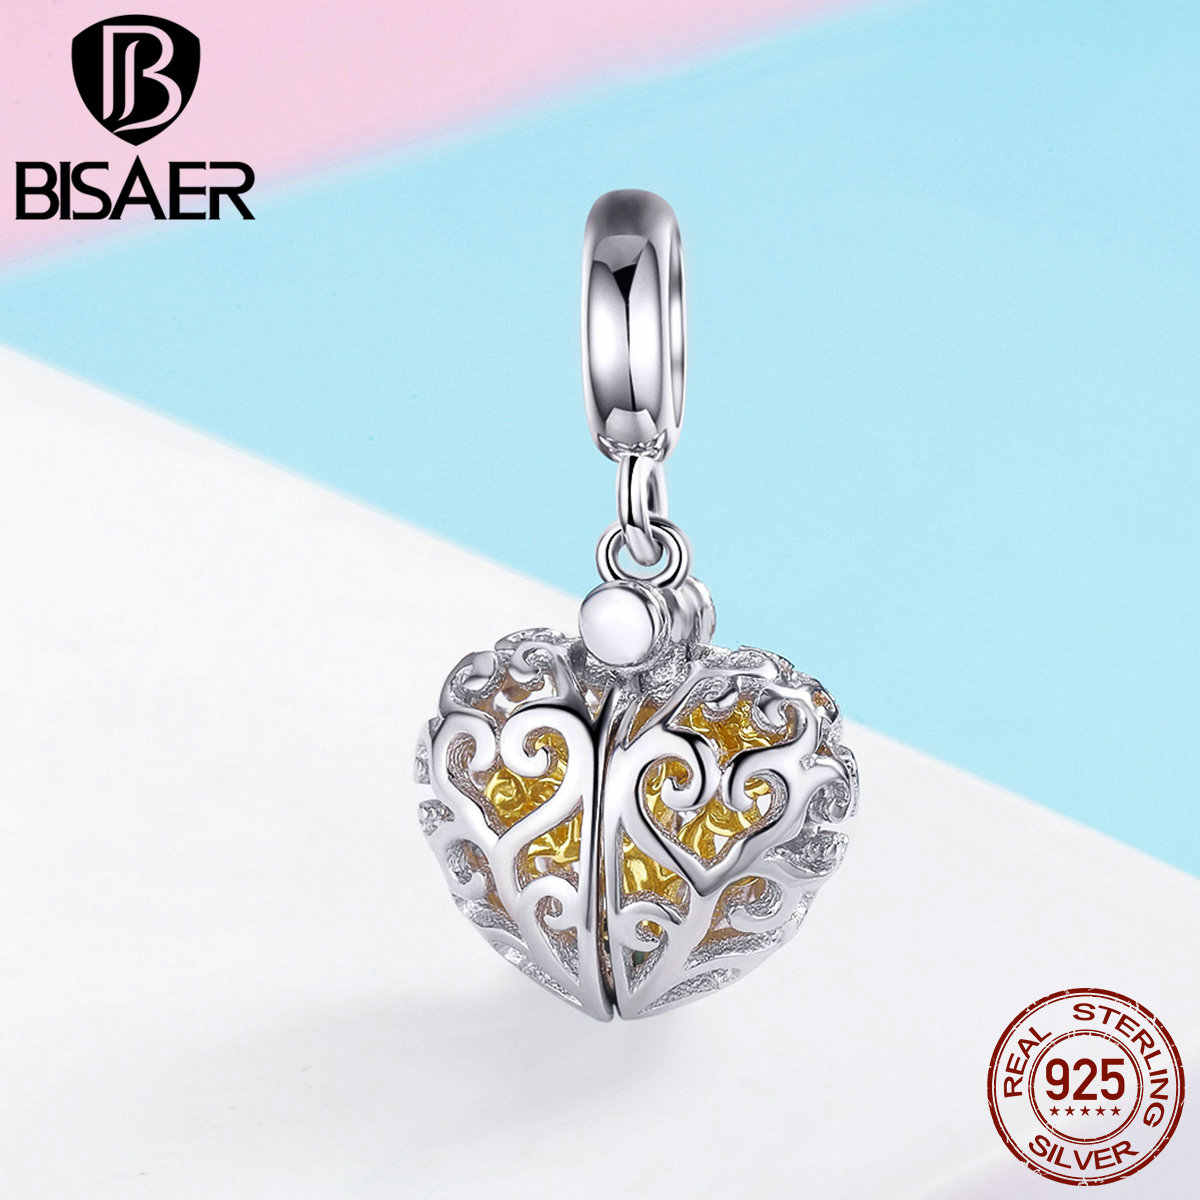 BISAER Trendy 925 Sterling Silver Gold Color Life Tree Pendant Charms For Women DIY Accessories Making Blessed Charms GXC1161